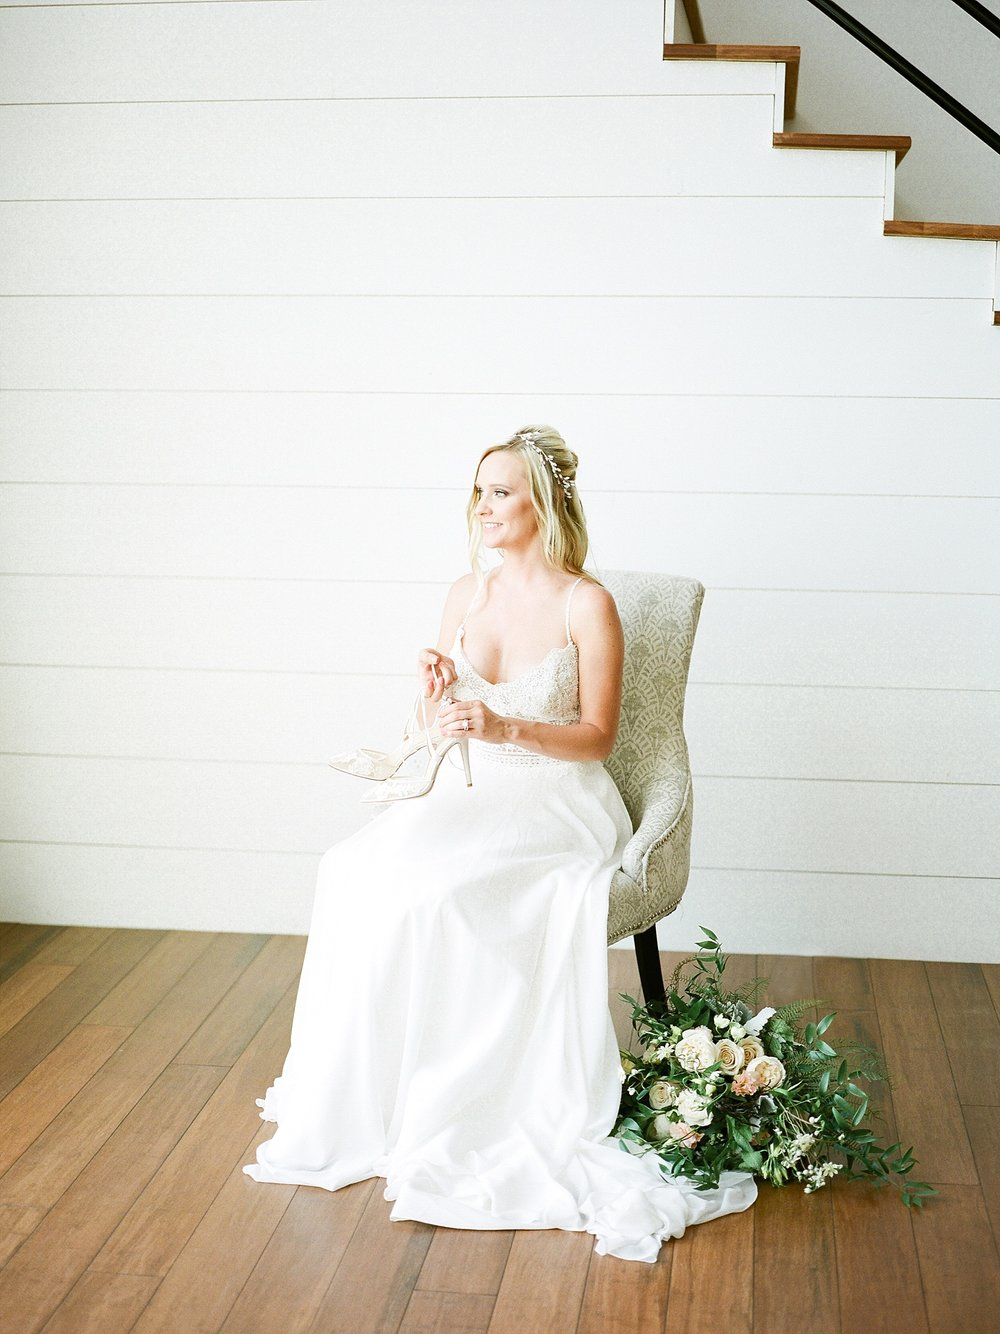 Textural Organic Wedding in All White Venue by Kelsi Kliethermes Wedding Photographer - Missouri, Midwest, and Destinations_0023.jpg